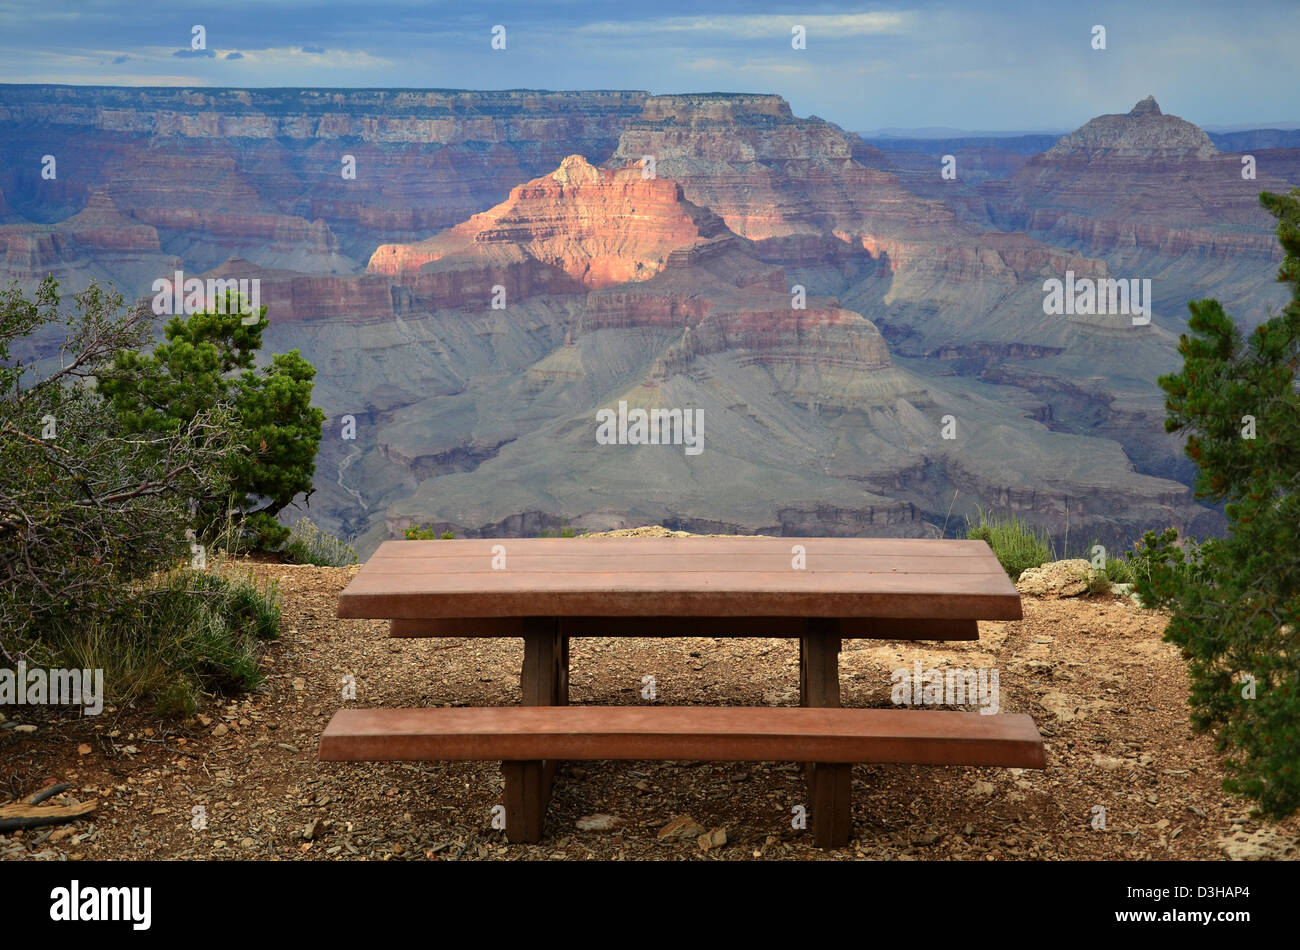 Grand Canyon National Park: View from Shoshone Point 8400 - Stock Image